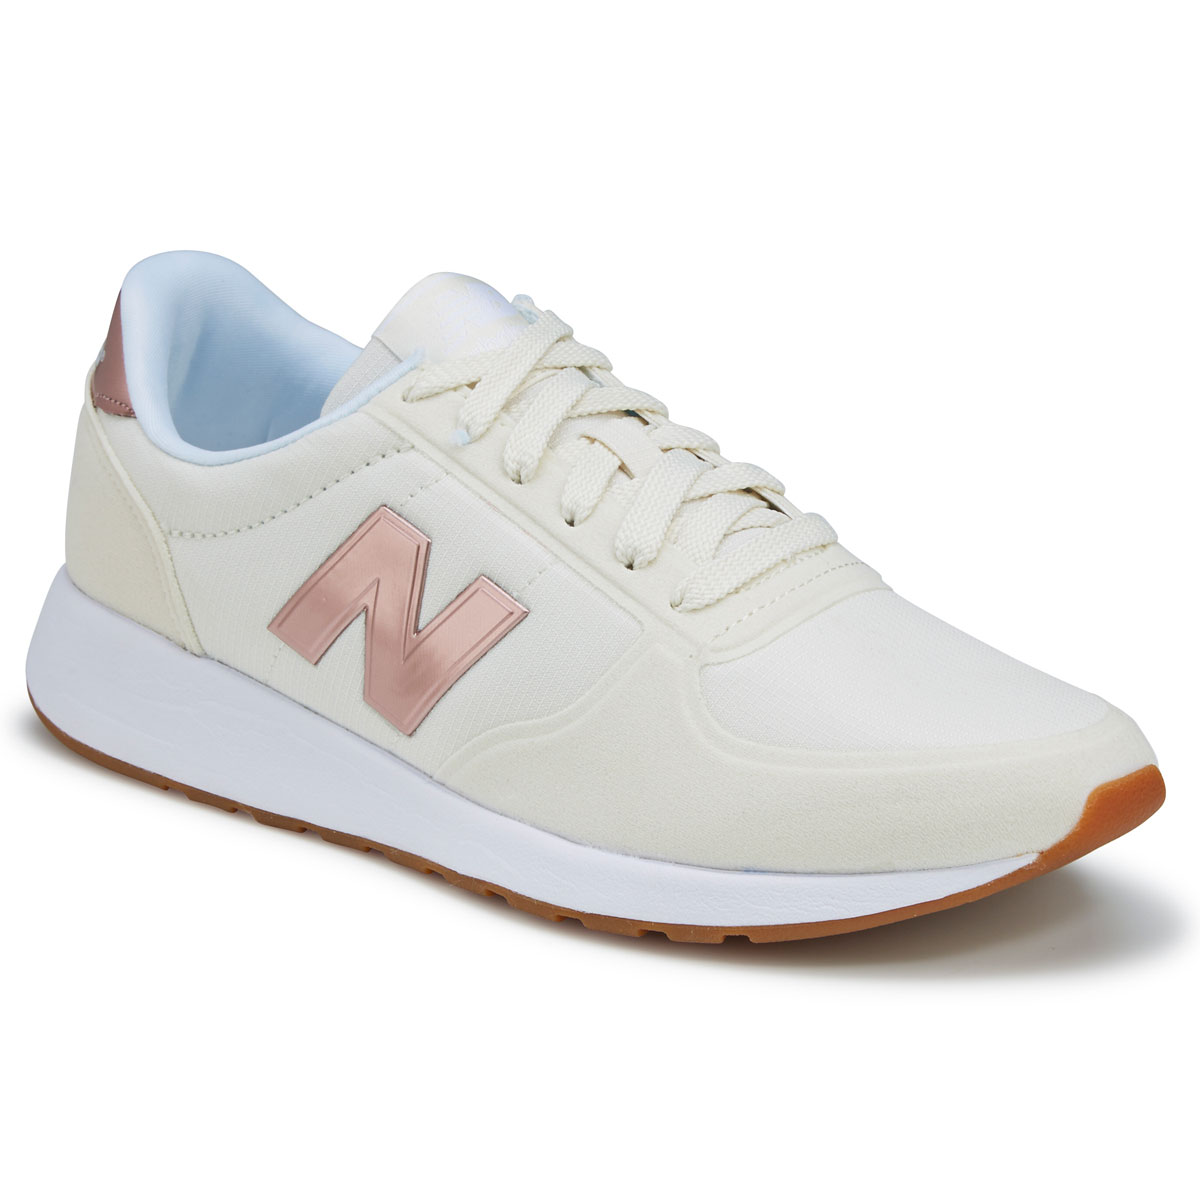 New Balance Women's 215V1 Sneakers - White, 8